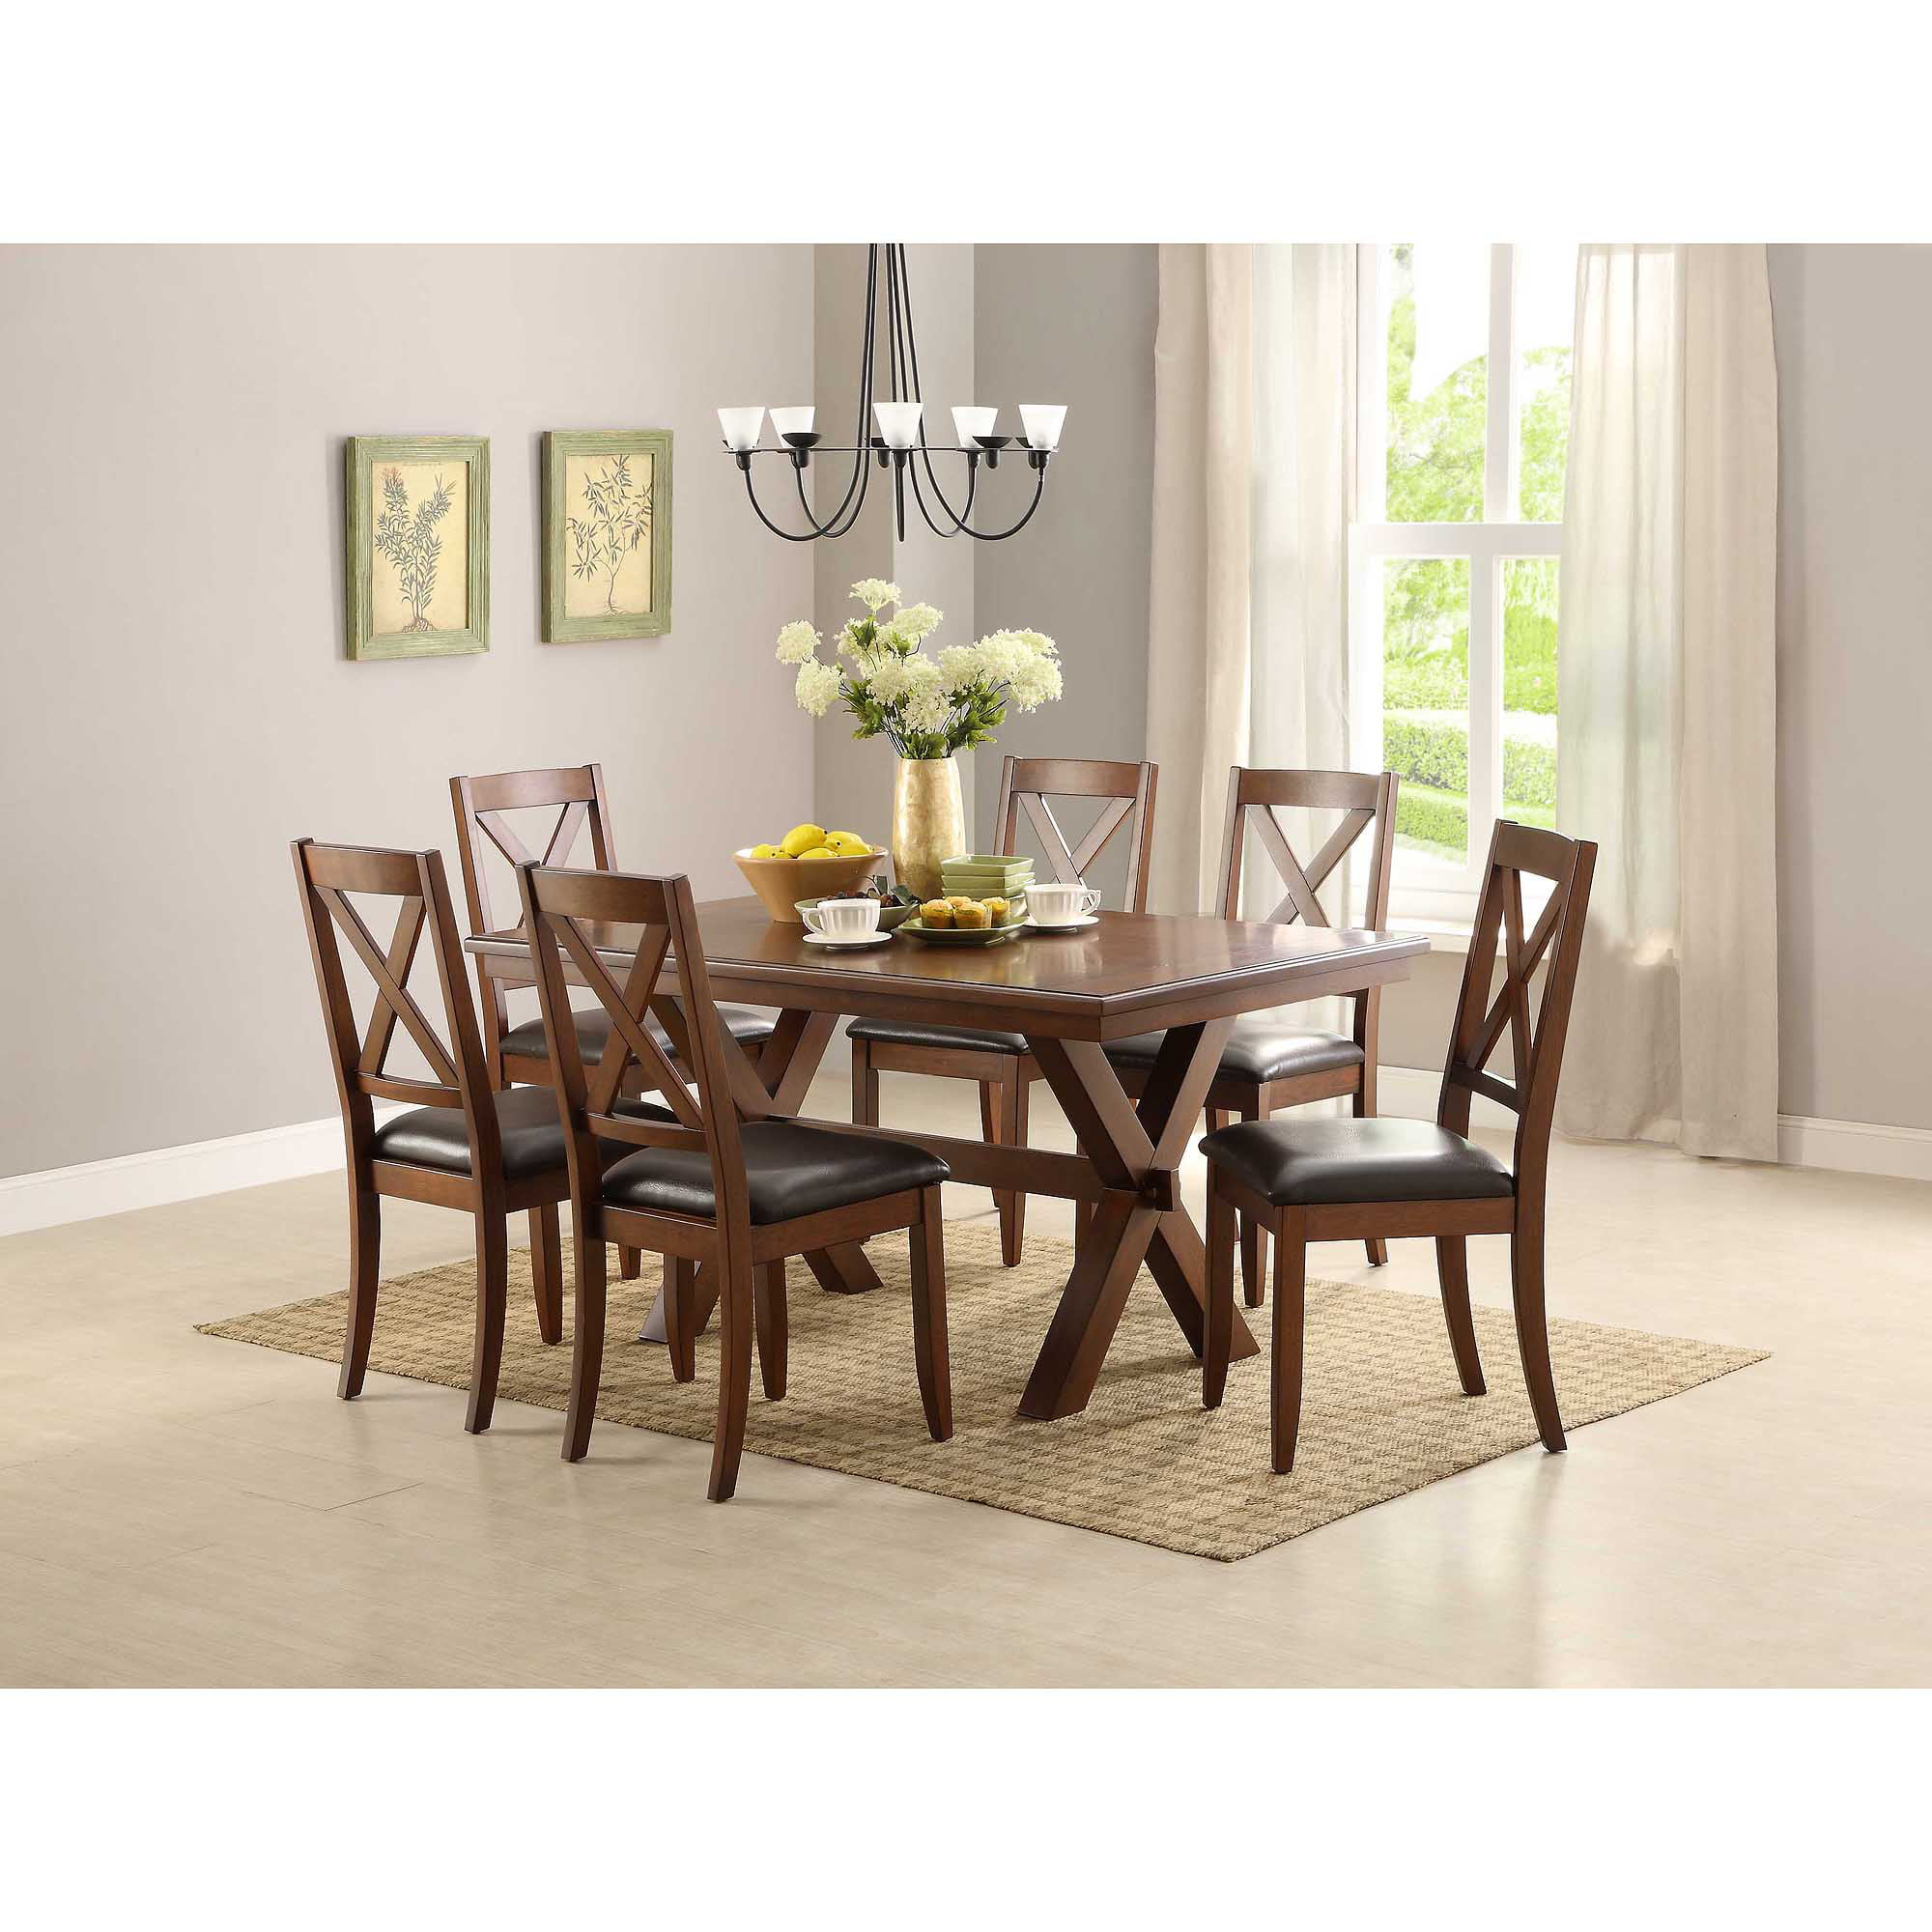 better homes and gardens maddox crossing dining table brown   walmart com better homes and gardens maddox crossing dining table brown      rh   walmart com